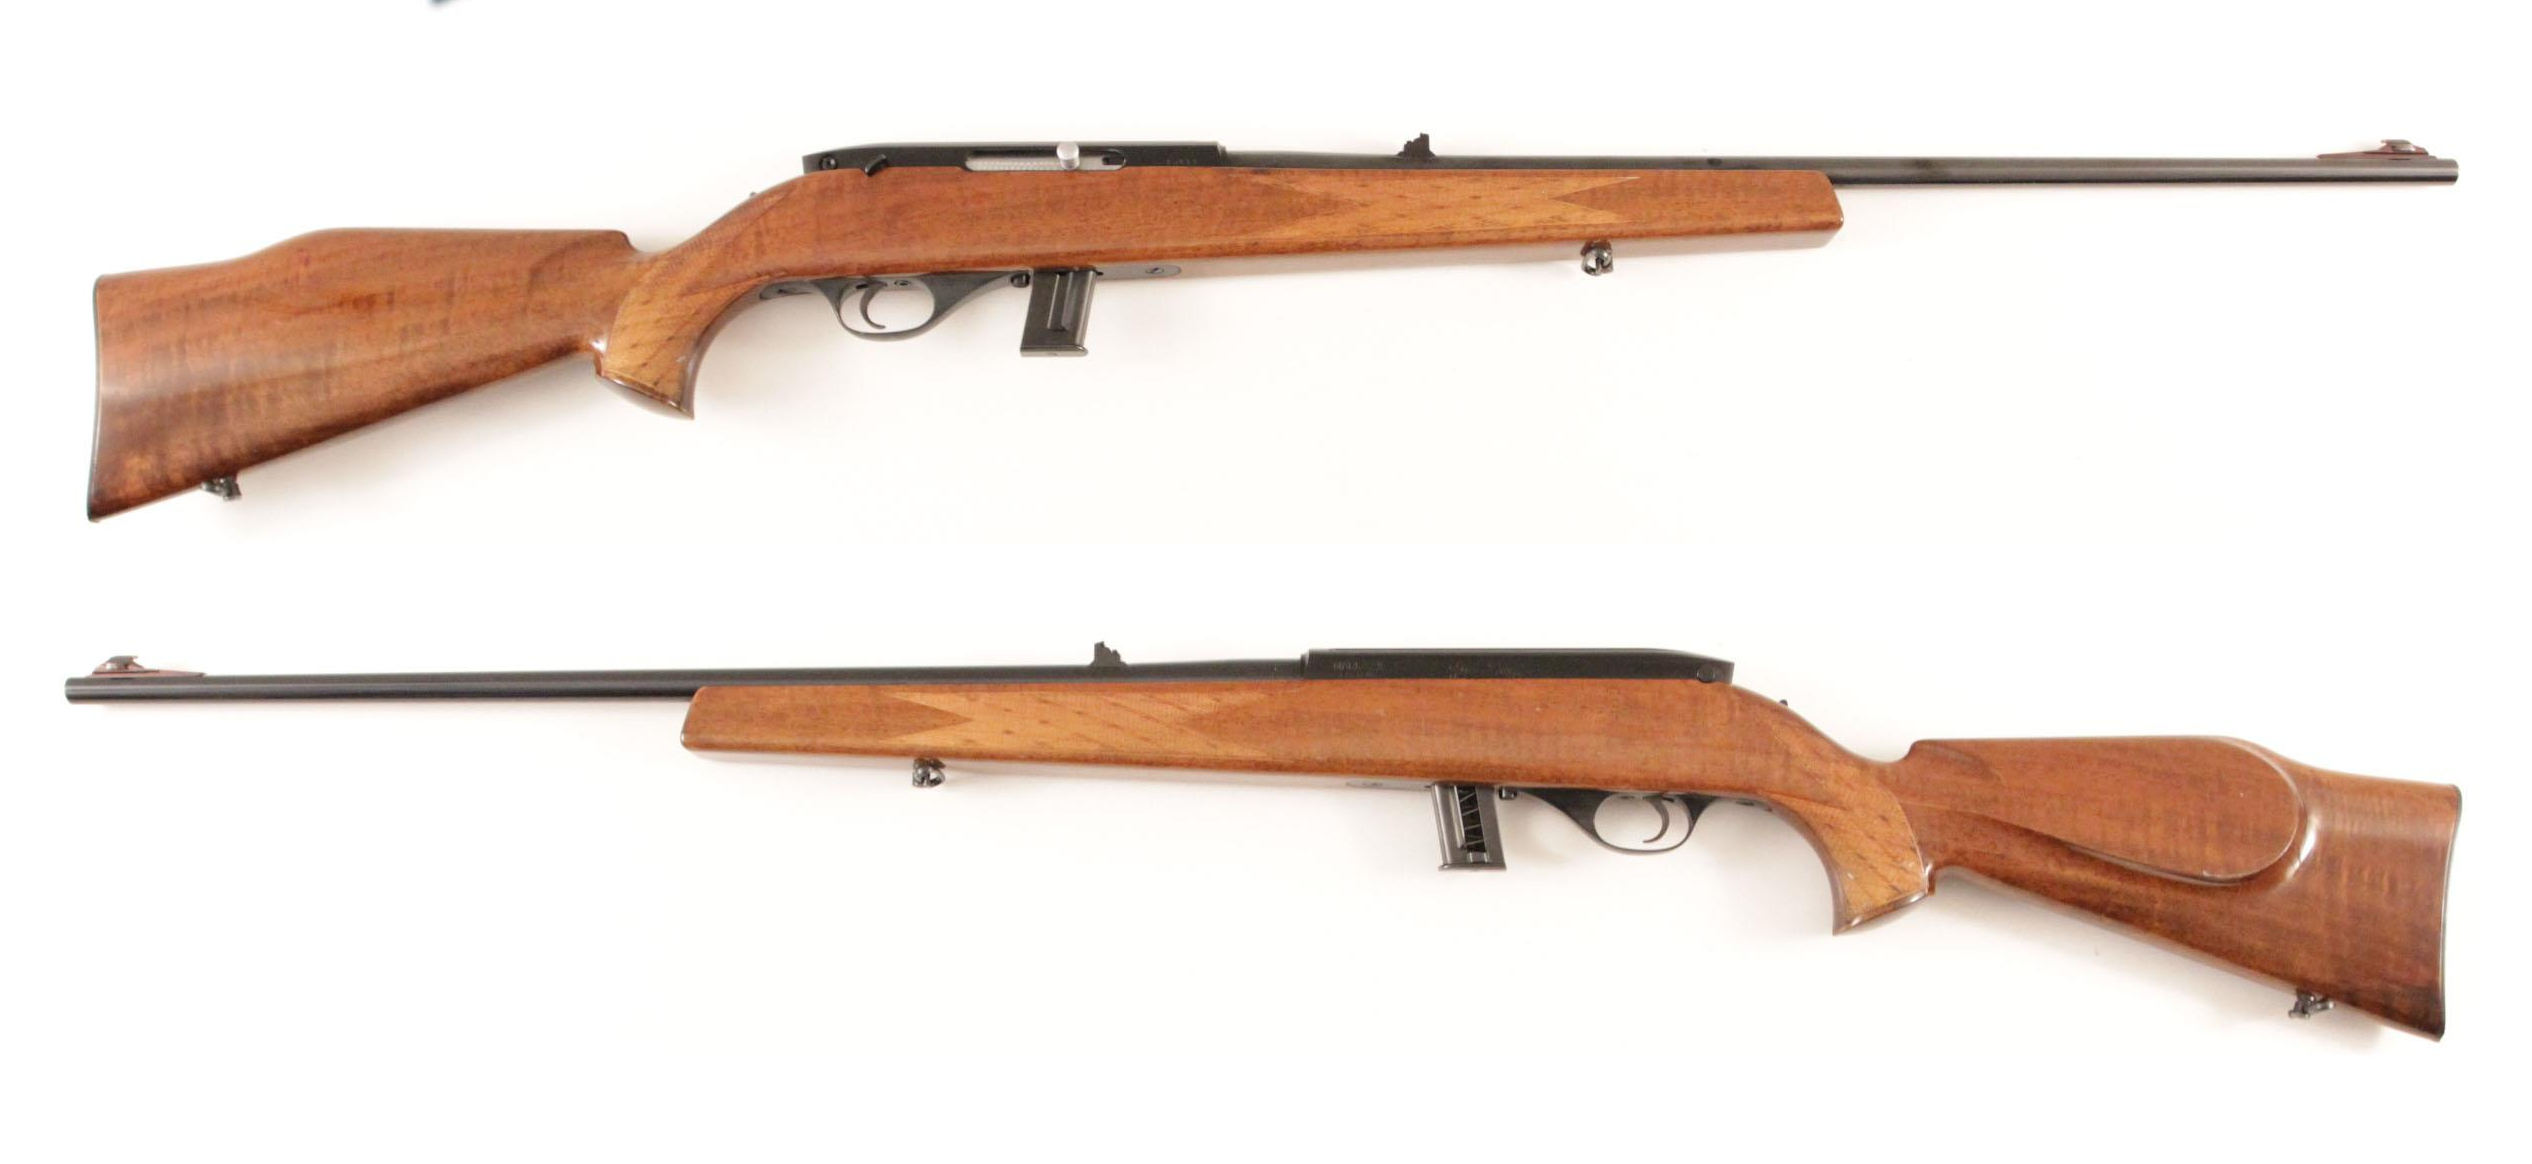 Roy Weatherby did not set out to create .22lr rimfire rifles. He was primarily interested in his wildcat centerfire rifles. But back in 1960 he approached Beretta to create a .22 rimfire.